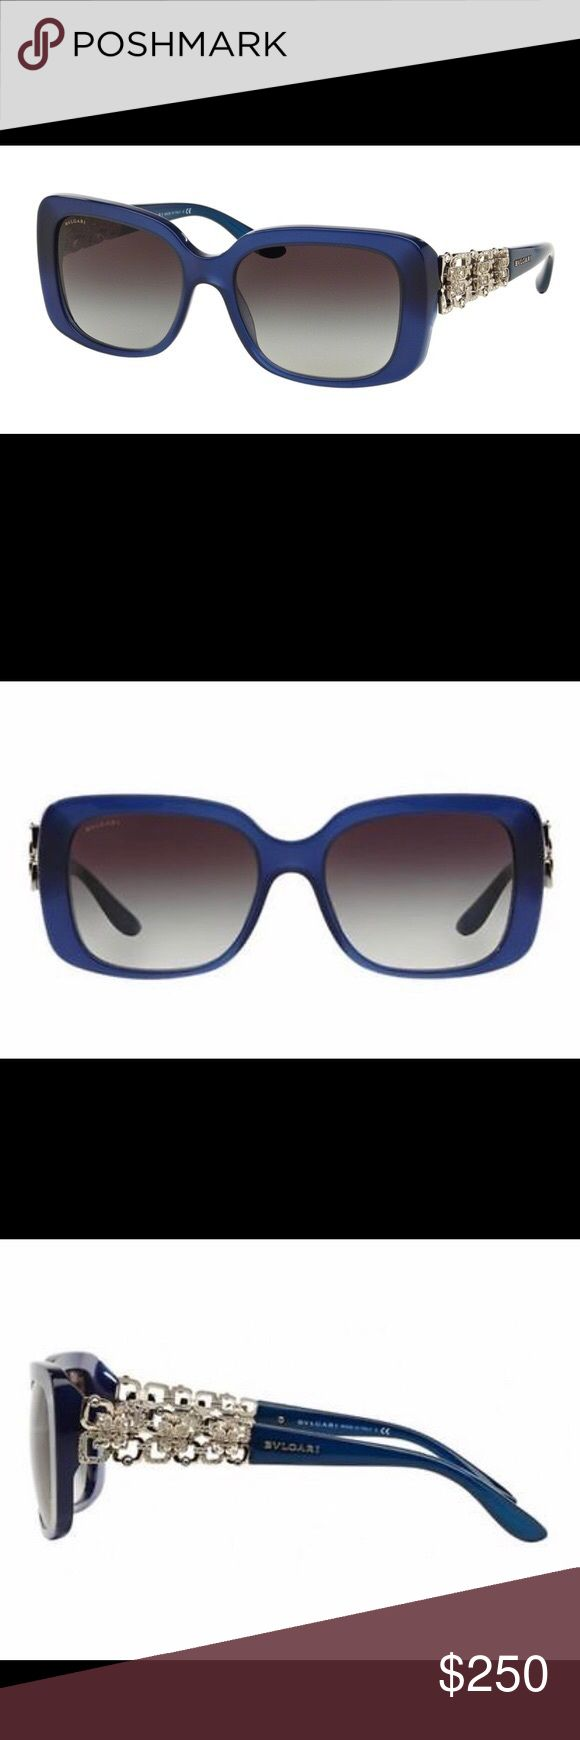 Bvlgari BV8167B 5018G 55mm Women Sunglasses Bvlgari BV8167B 5018G 55mm is a Female frame made in Italy. The shape is Rectangle with a Full Rim frame made of Acetate. The lenses offer sunglare reduction and UV protection. Bulgari Accessories Sunglasses